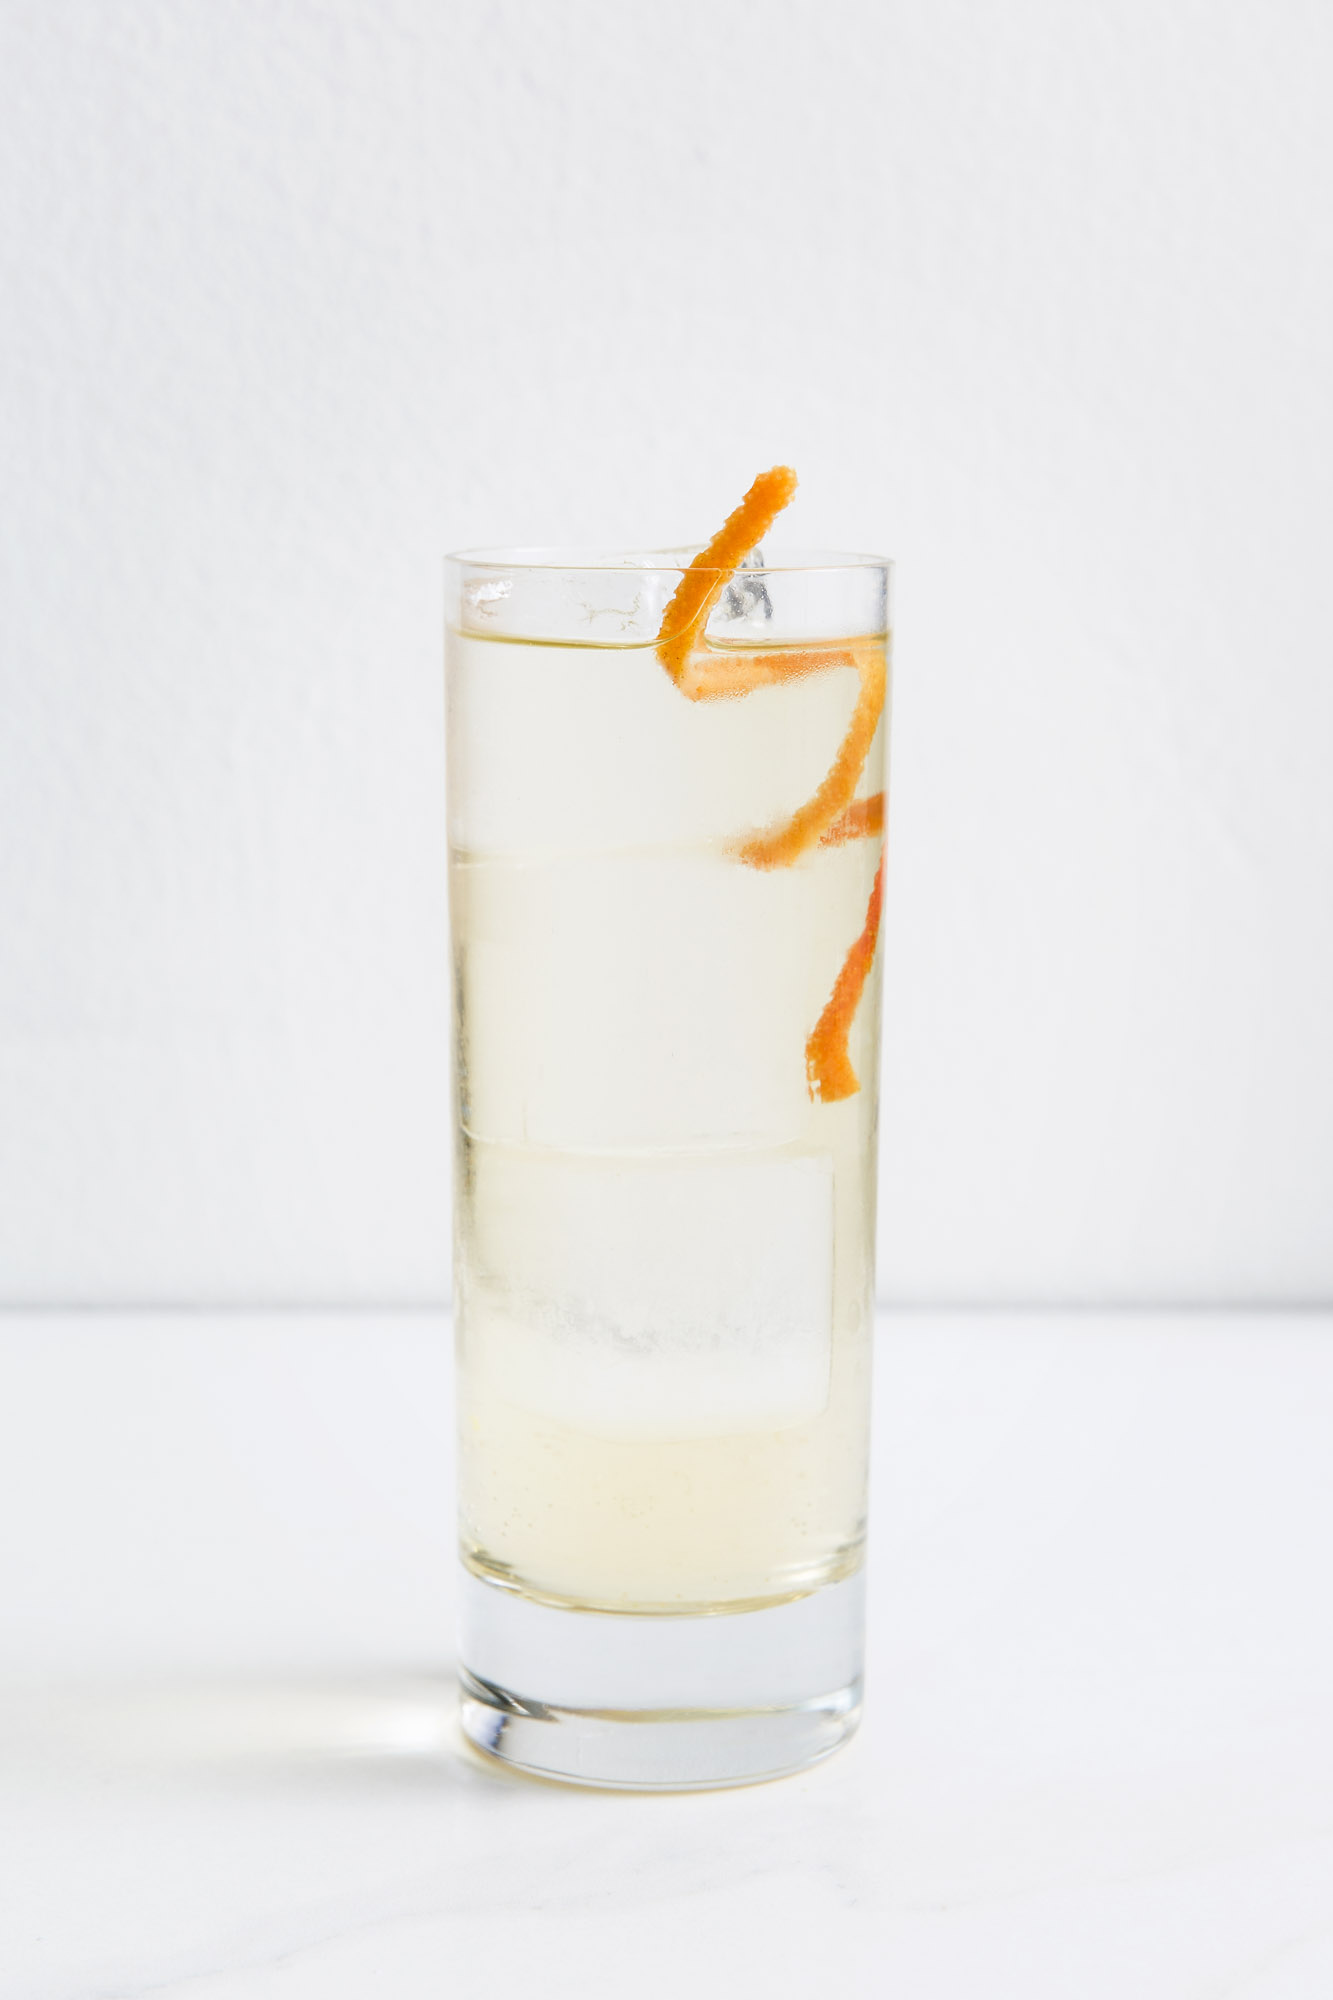 CHAREAU & SODA   2 oz Chareau  Soda  Pour Chareau over Ice and top with your choice of all-natural flavored soda. Garnish with citrus.  (Grapefruit Soda and Grapefruit Peel shown)